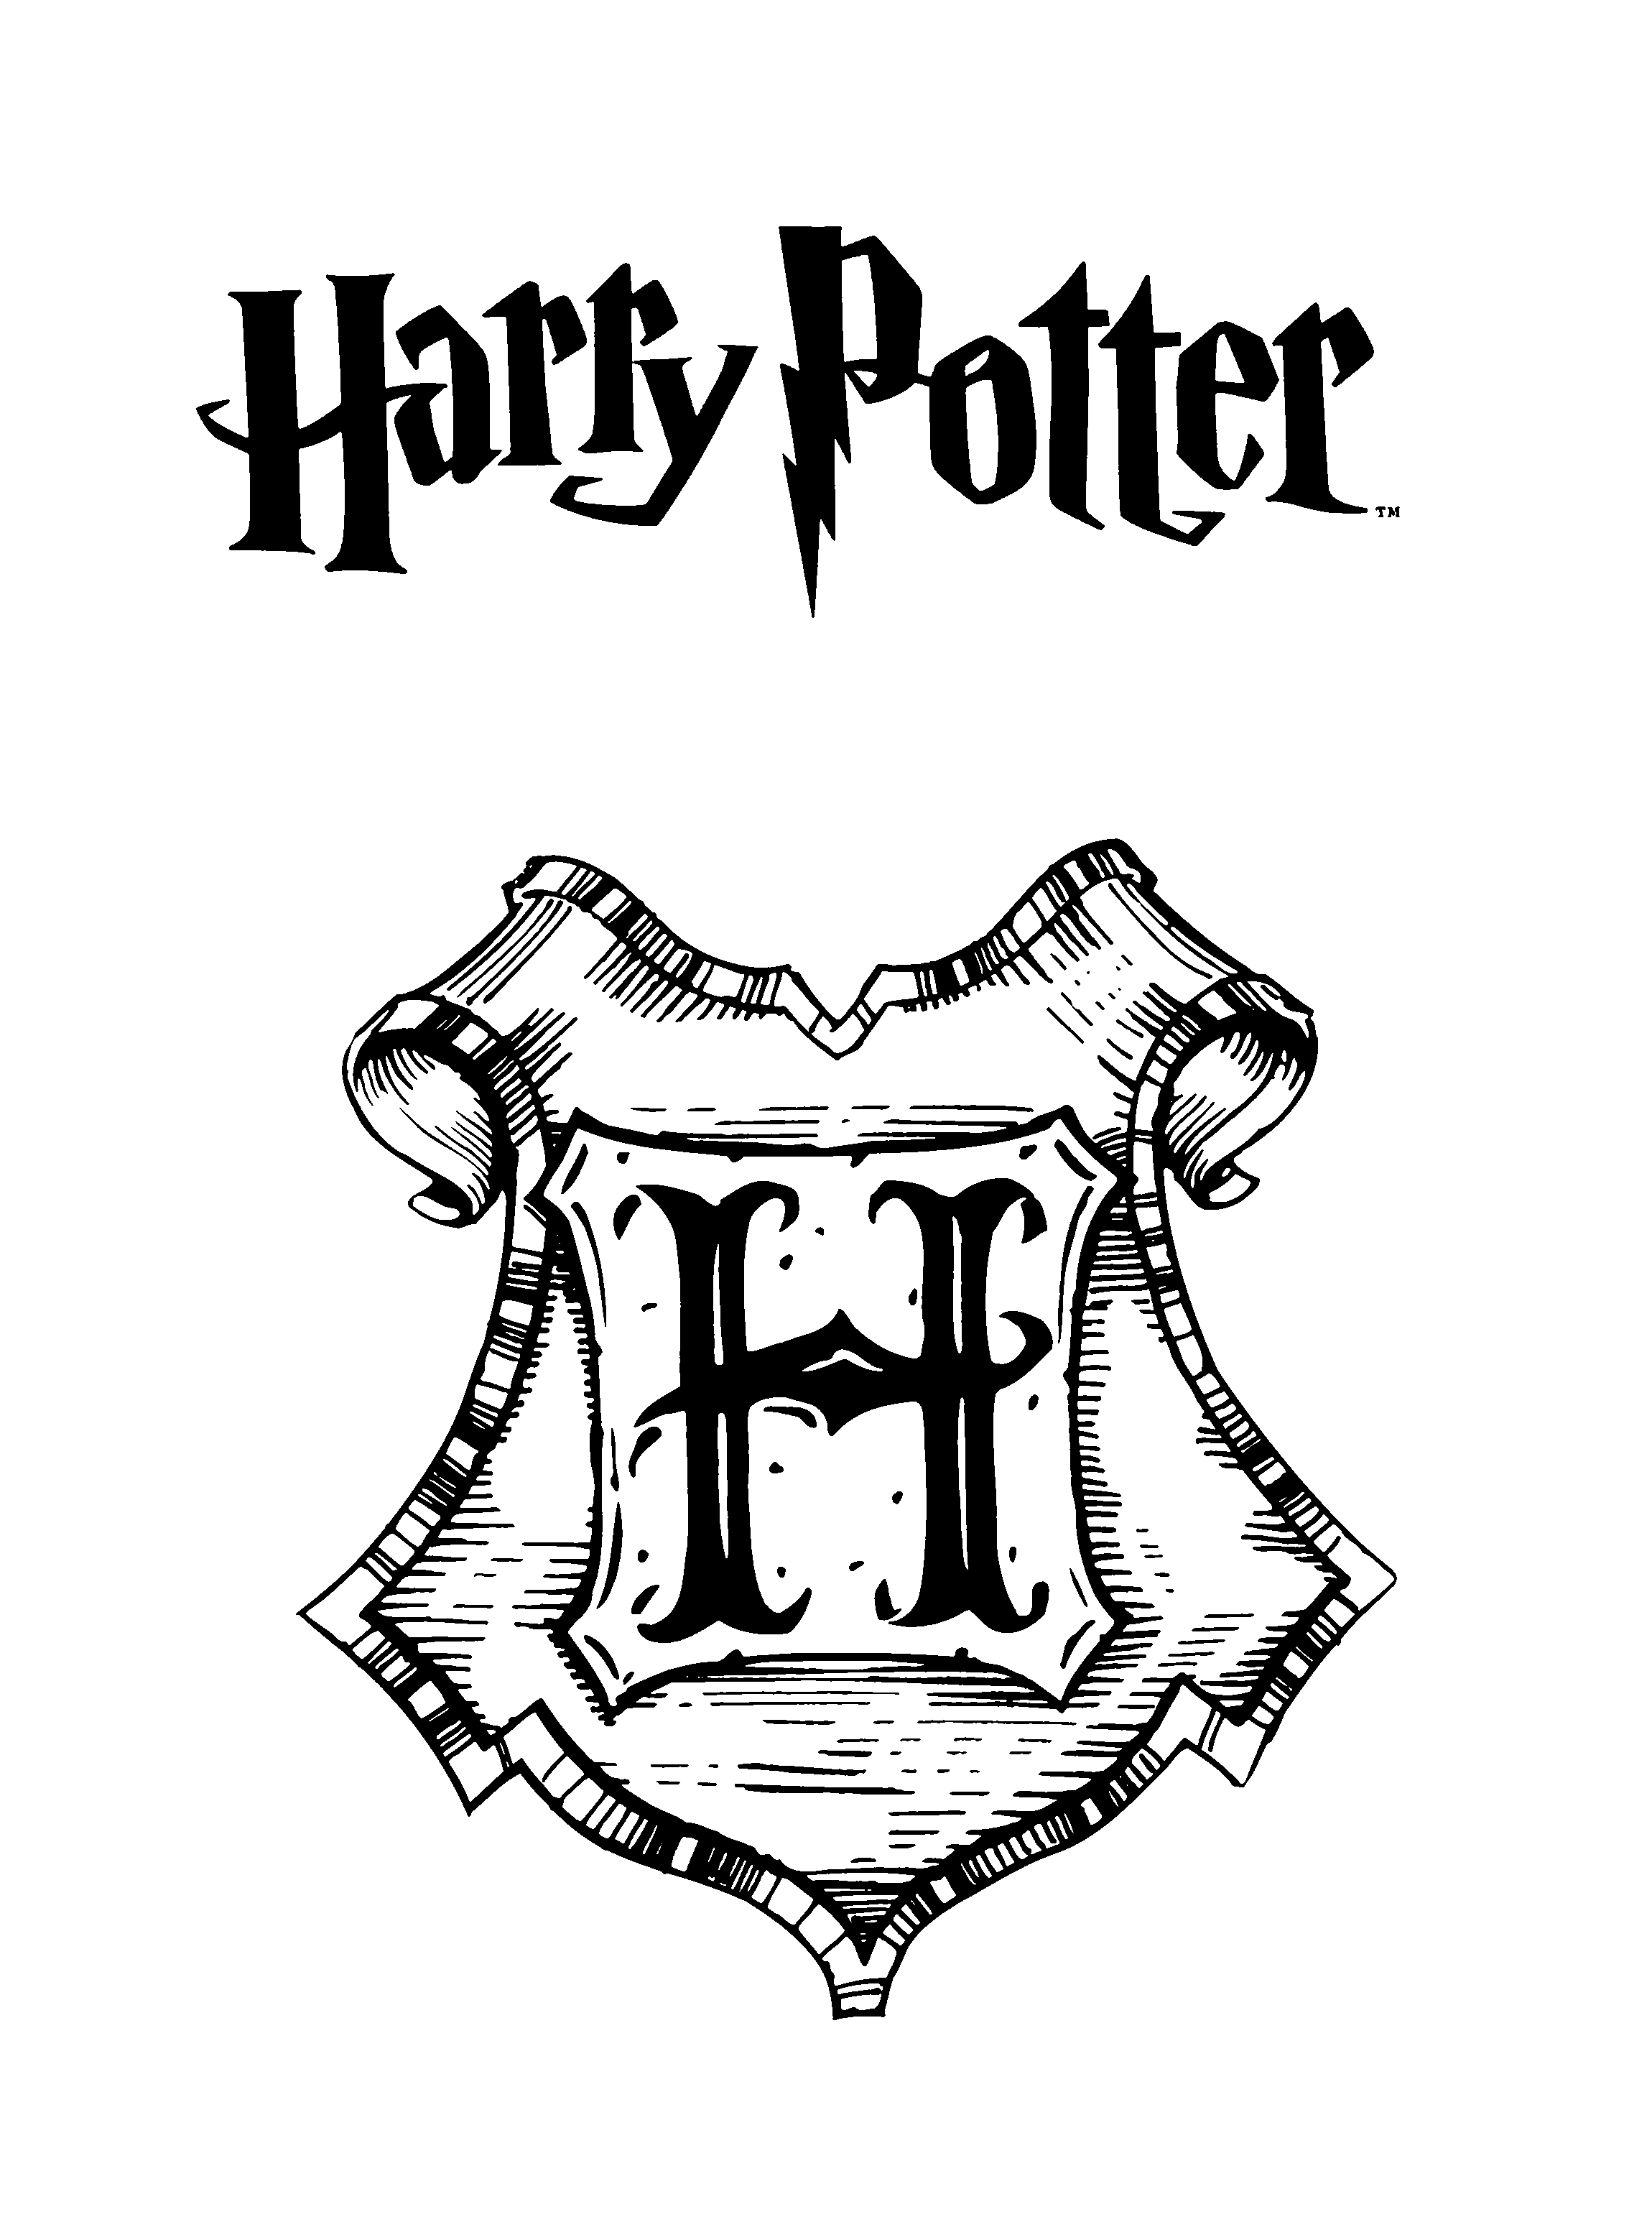 Harry Potter Crest